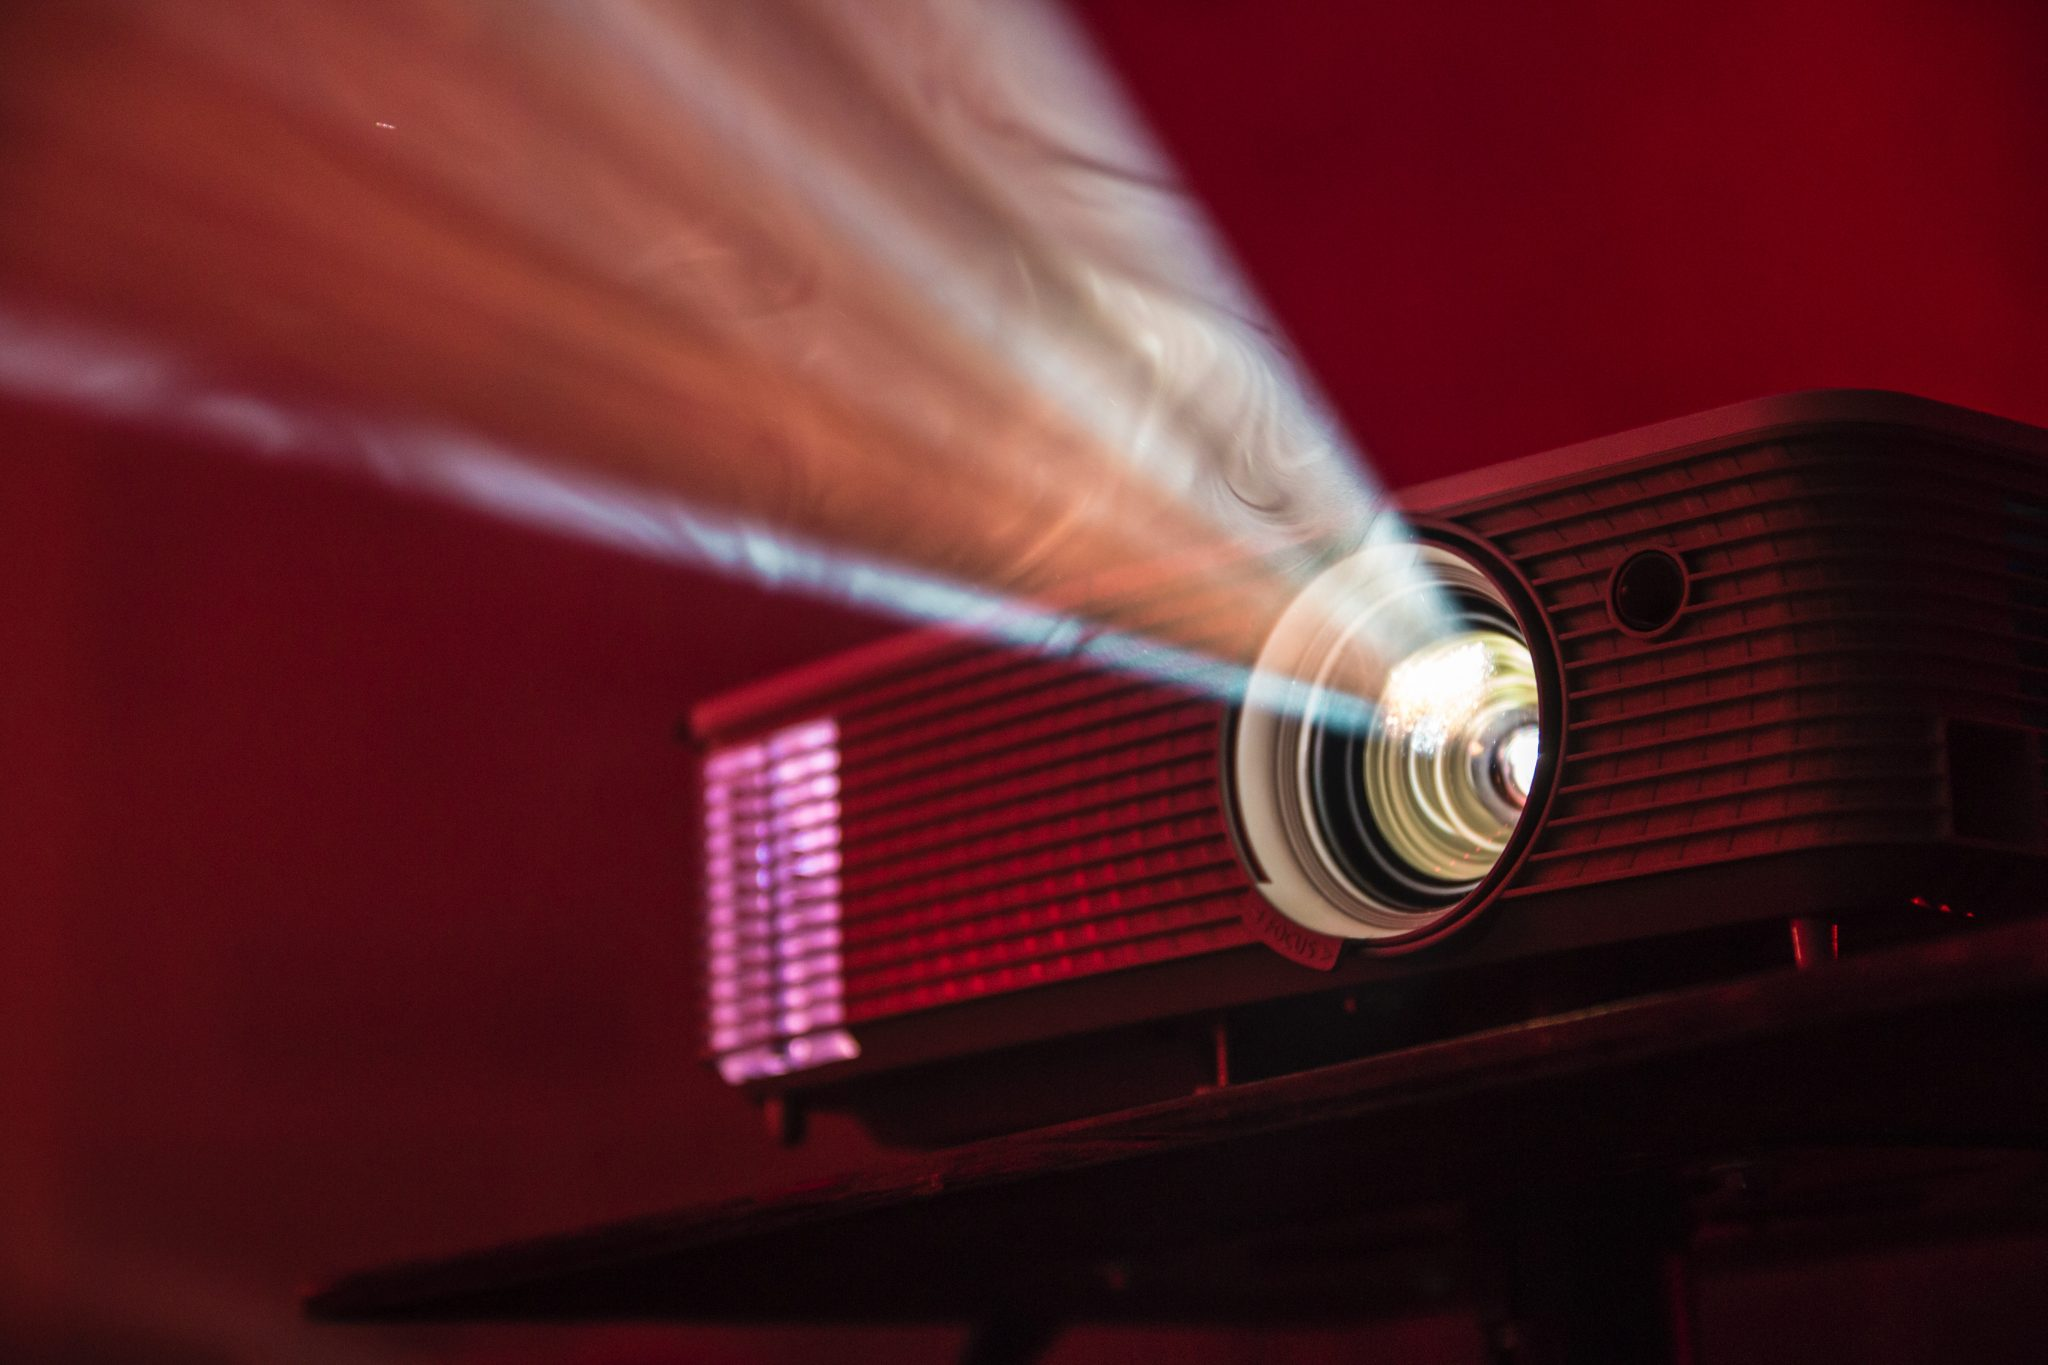 best cheap projector under 50